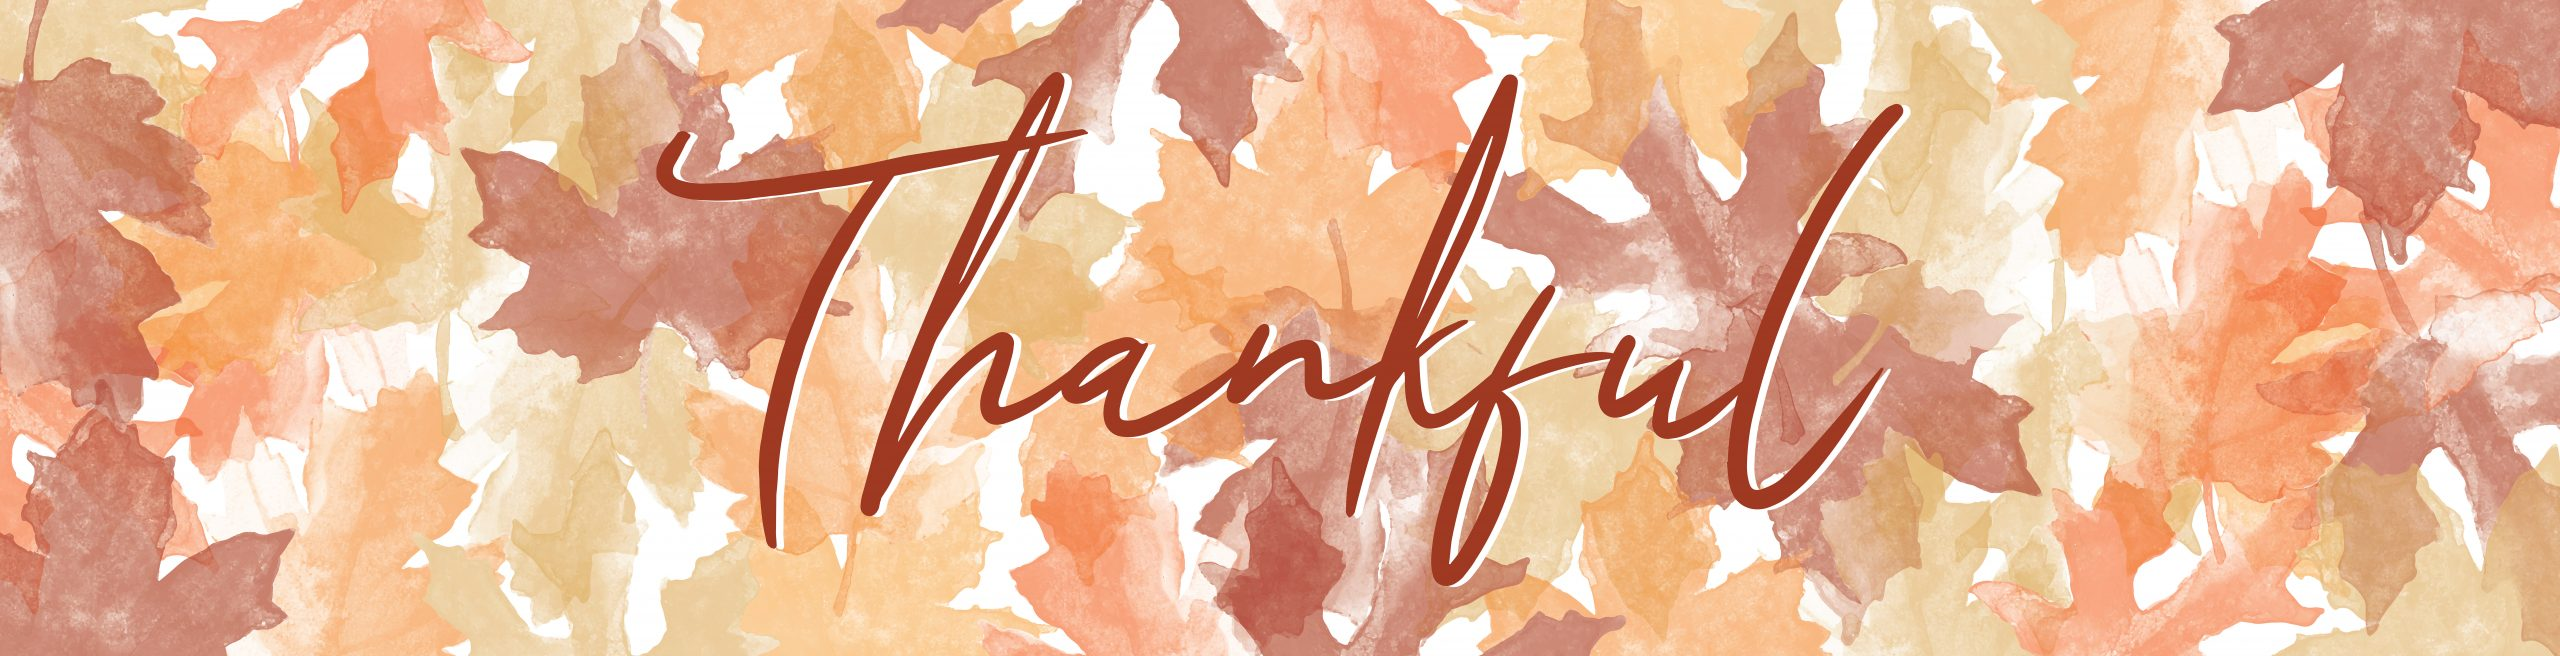 The word Thankful spelled out in Autumn leaves